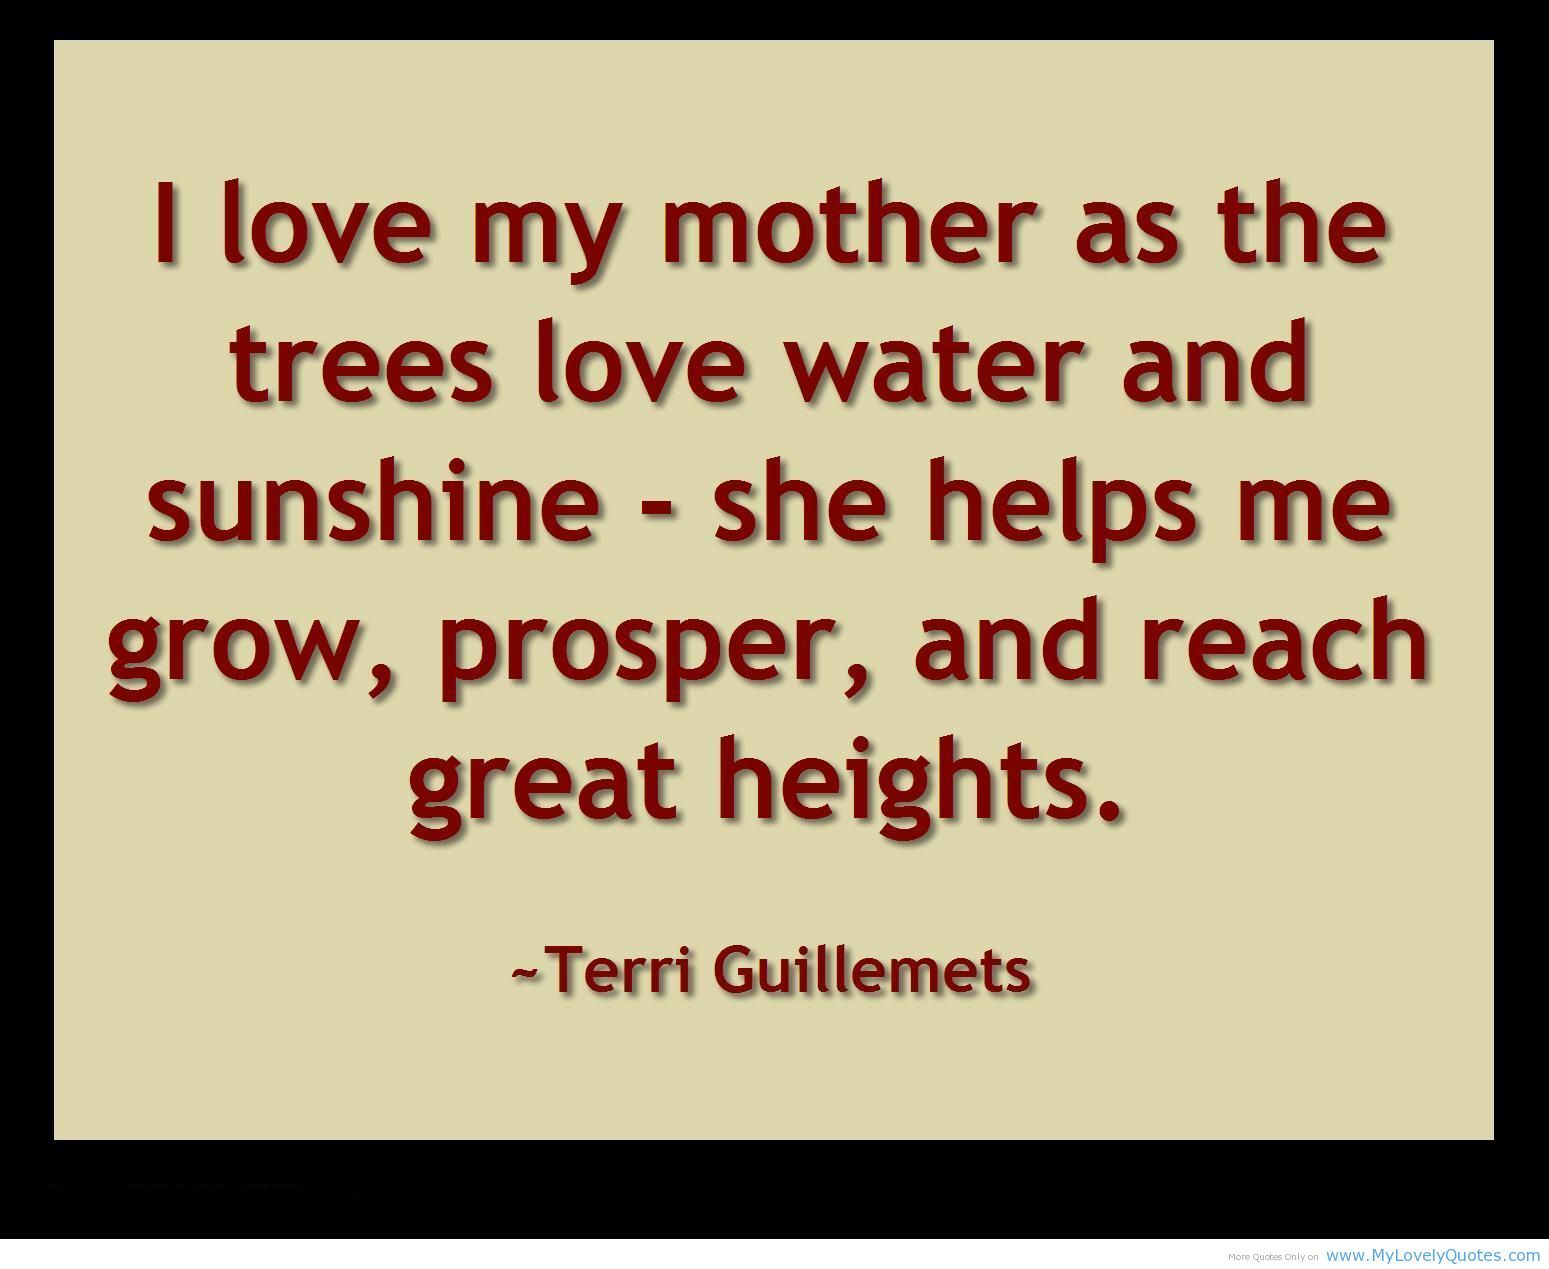 I love my mother FLVS inspiration quote